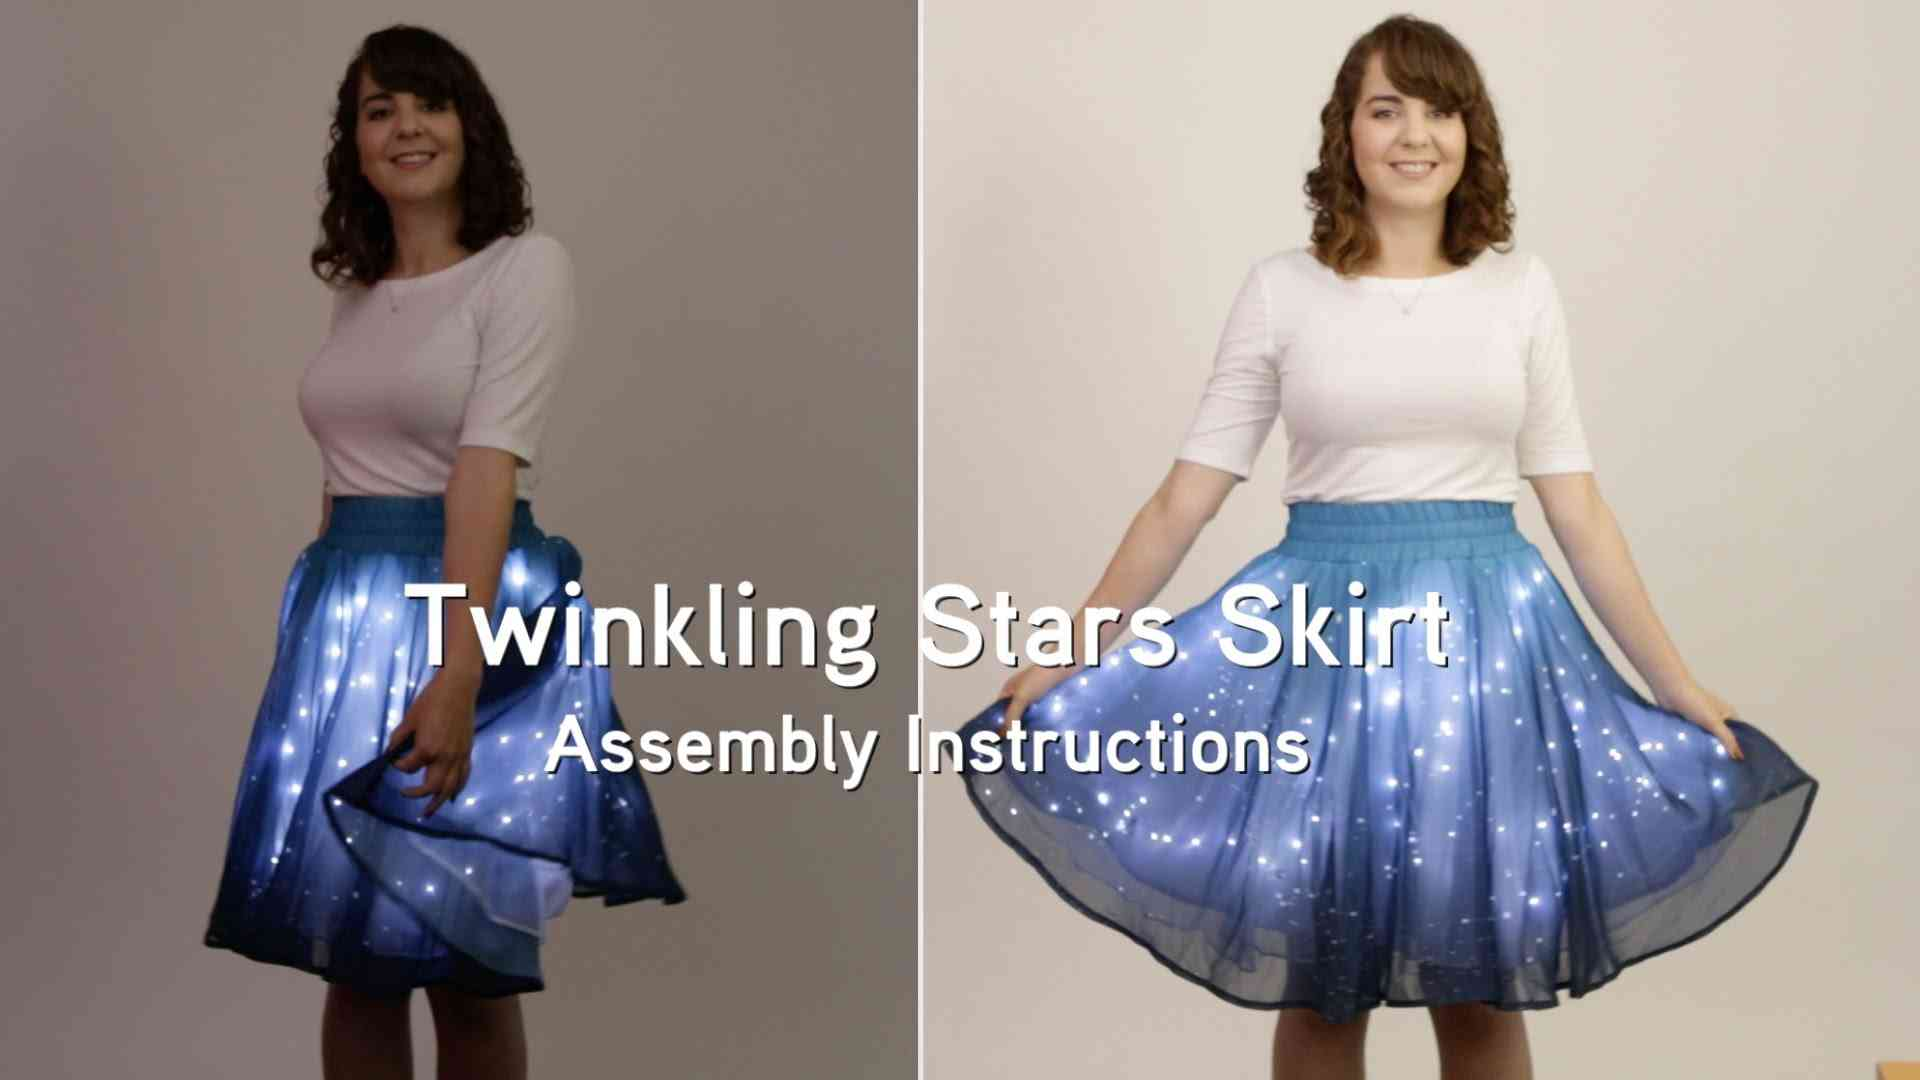 Twinkling Stars Skirt (Assembly Instructions) from ThinkGeek - YouTube